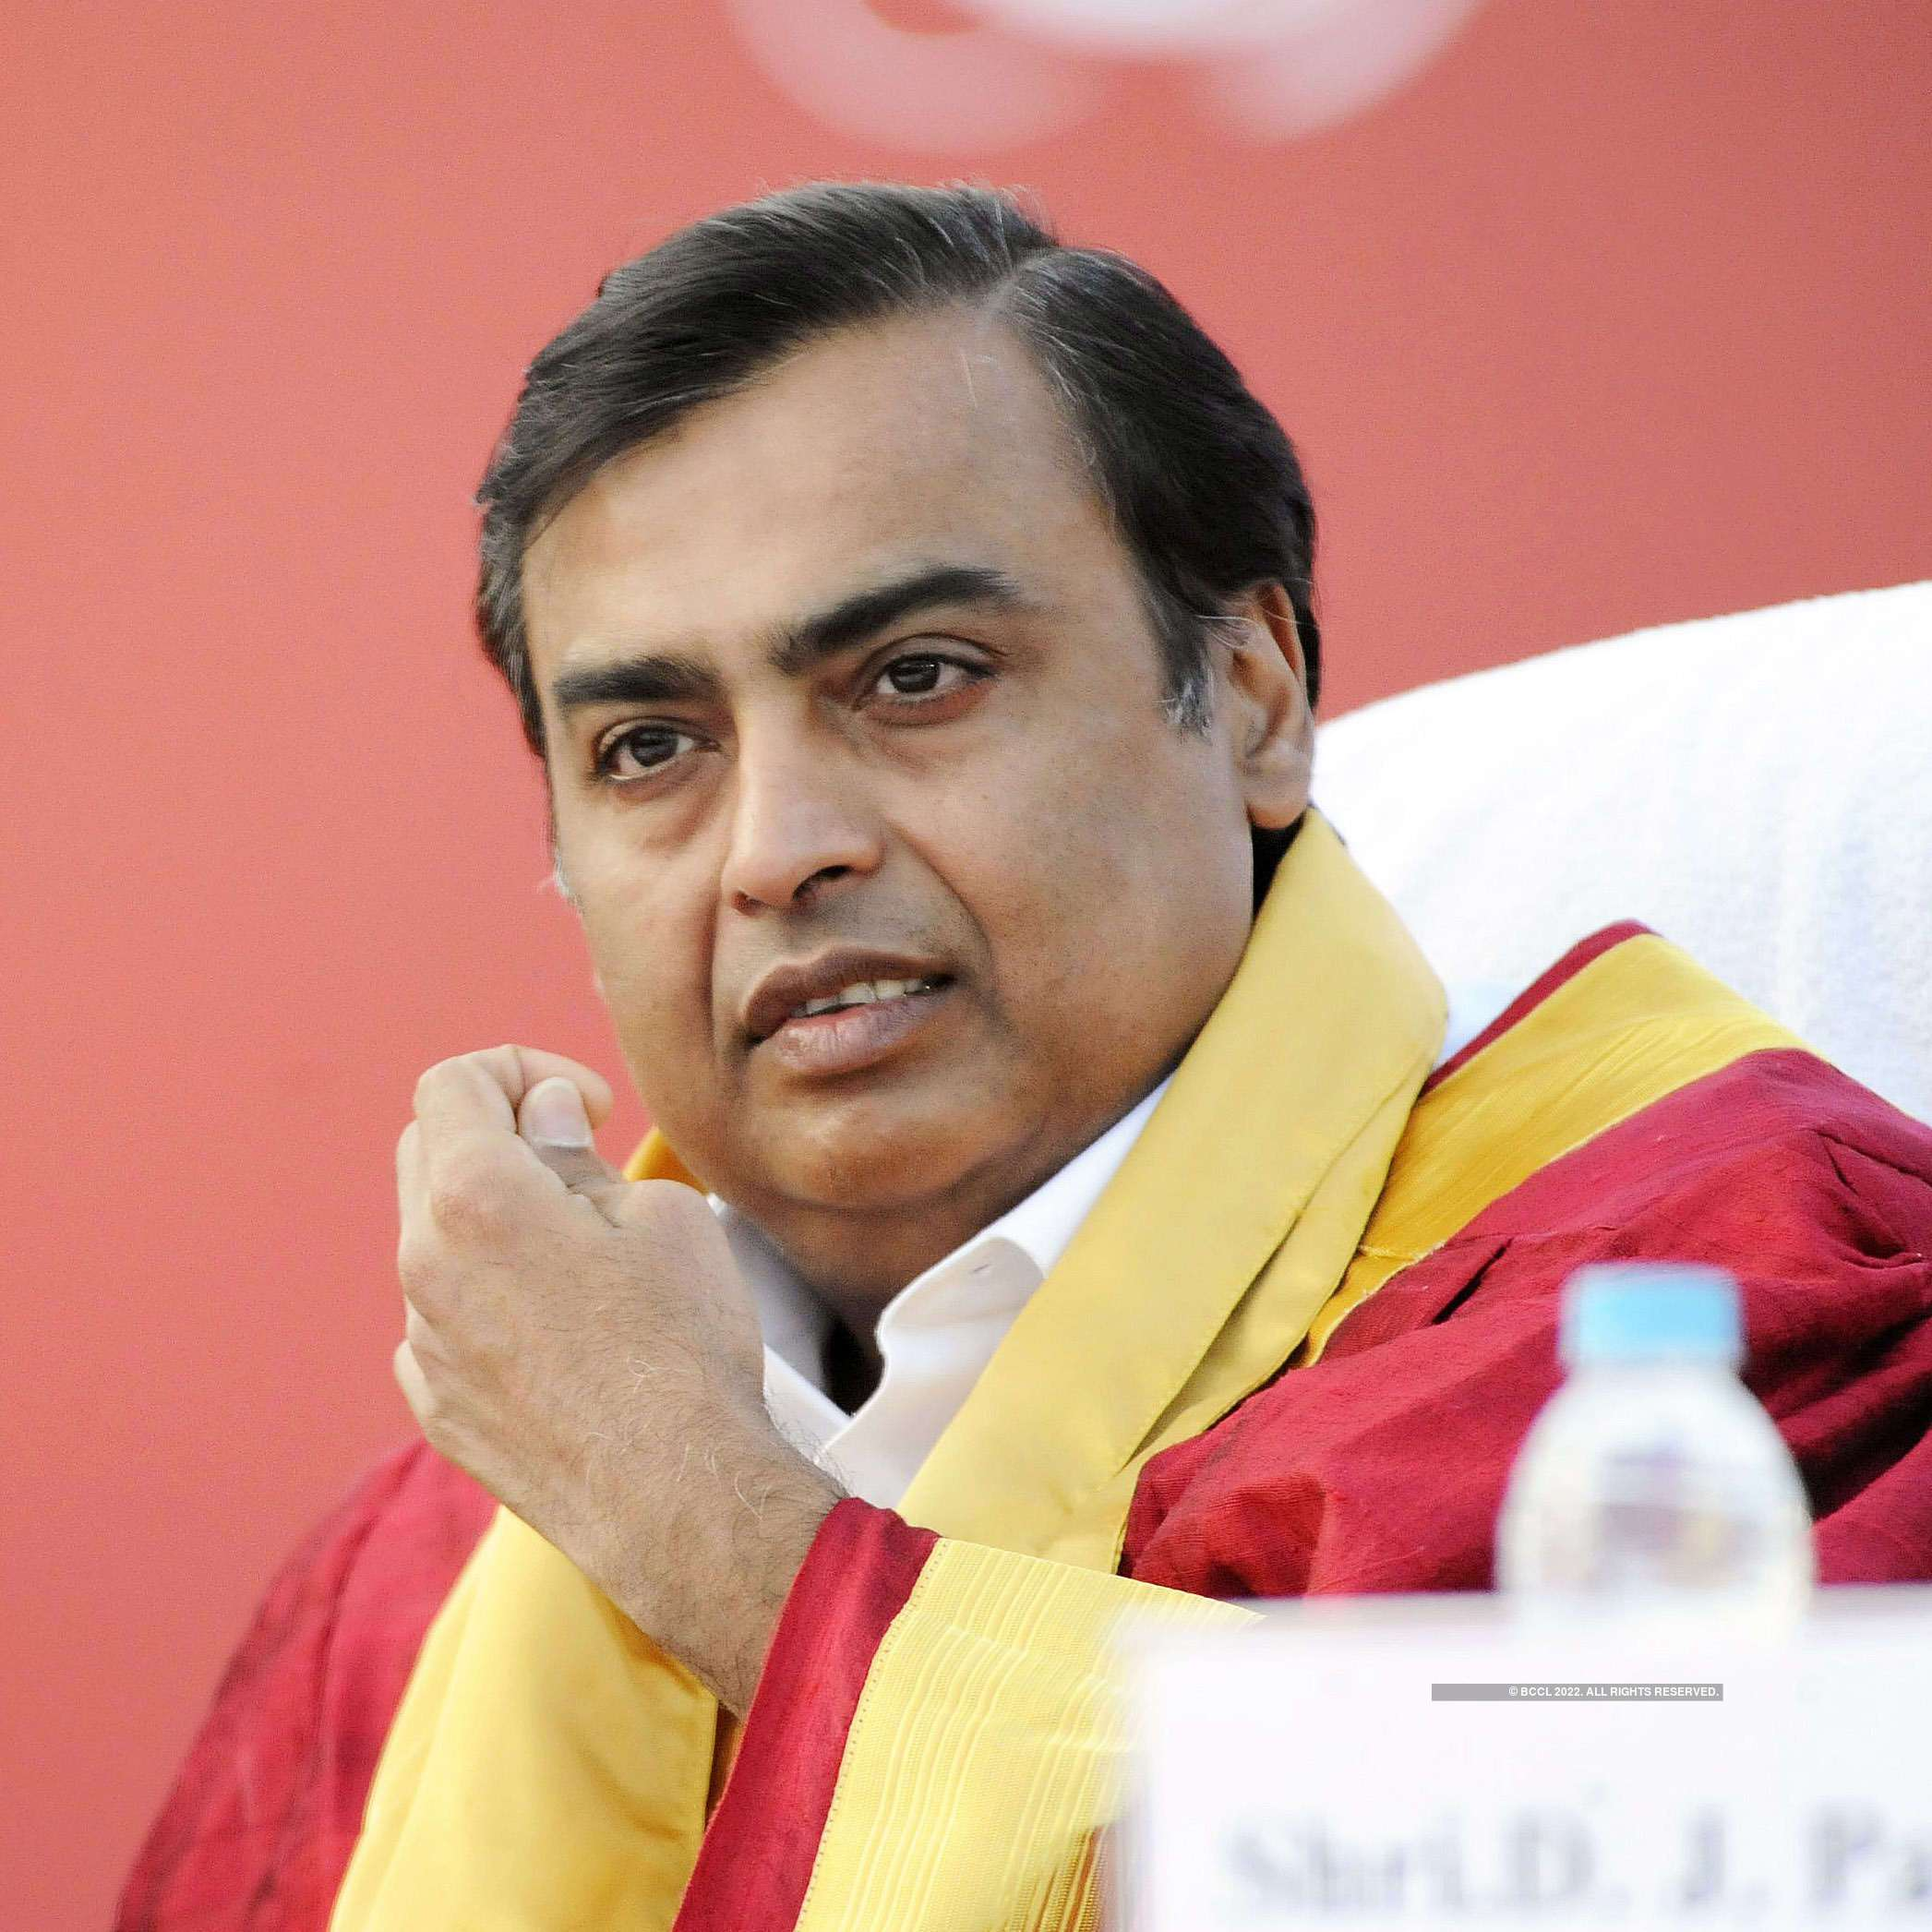 Pictures of India's richest man Mukesh Ambani, an epitome of success